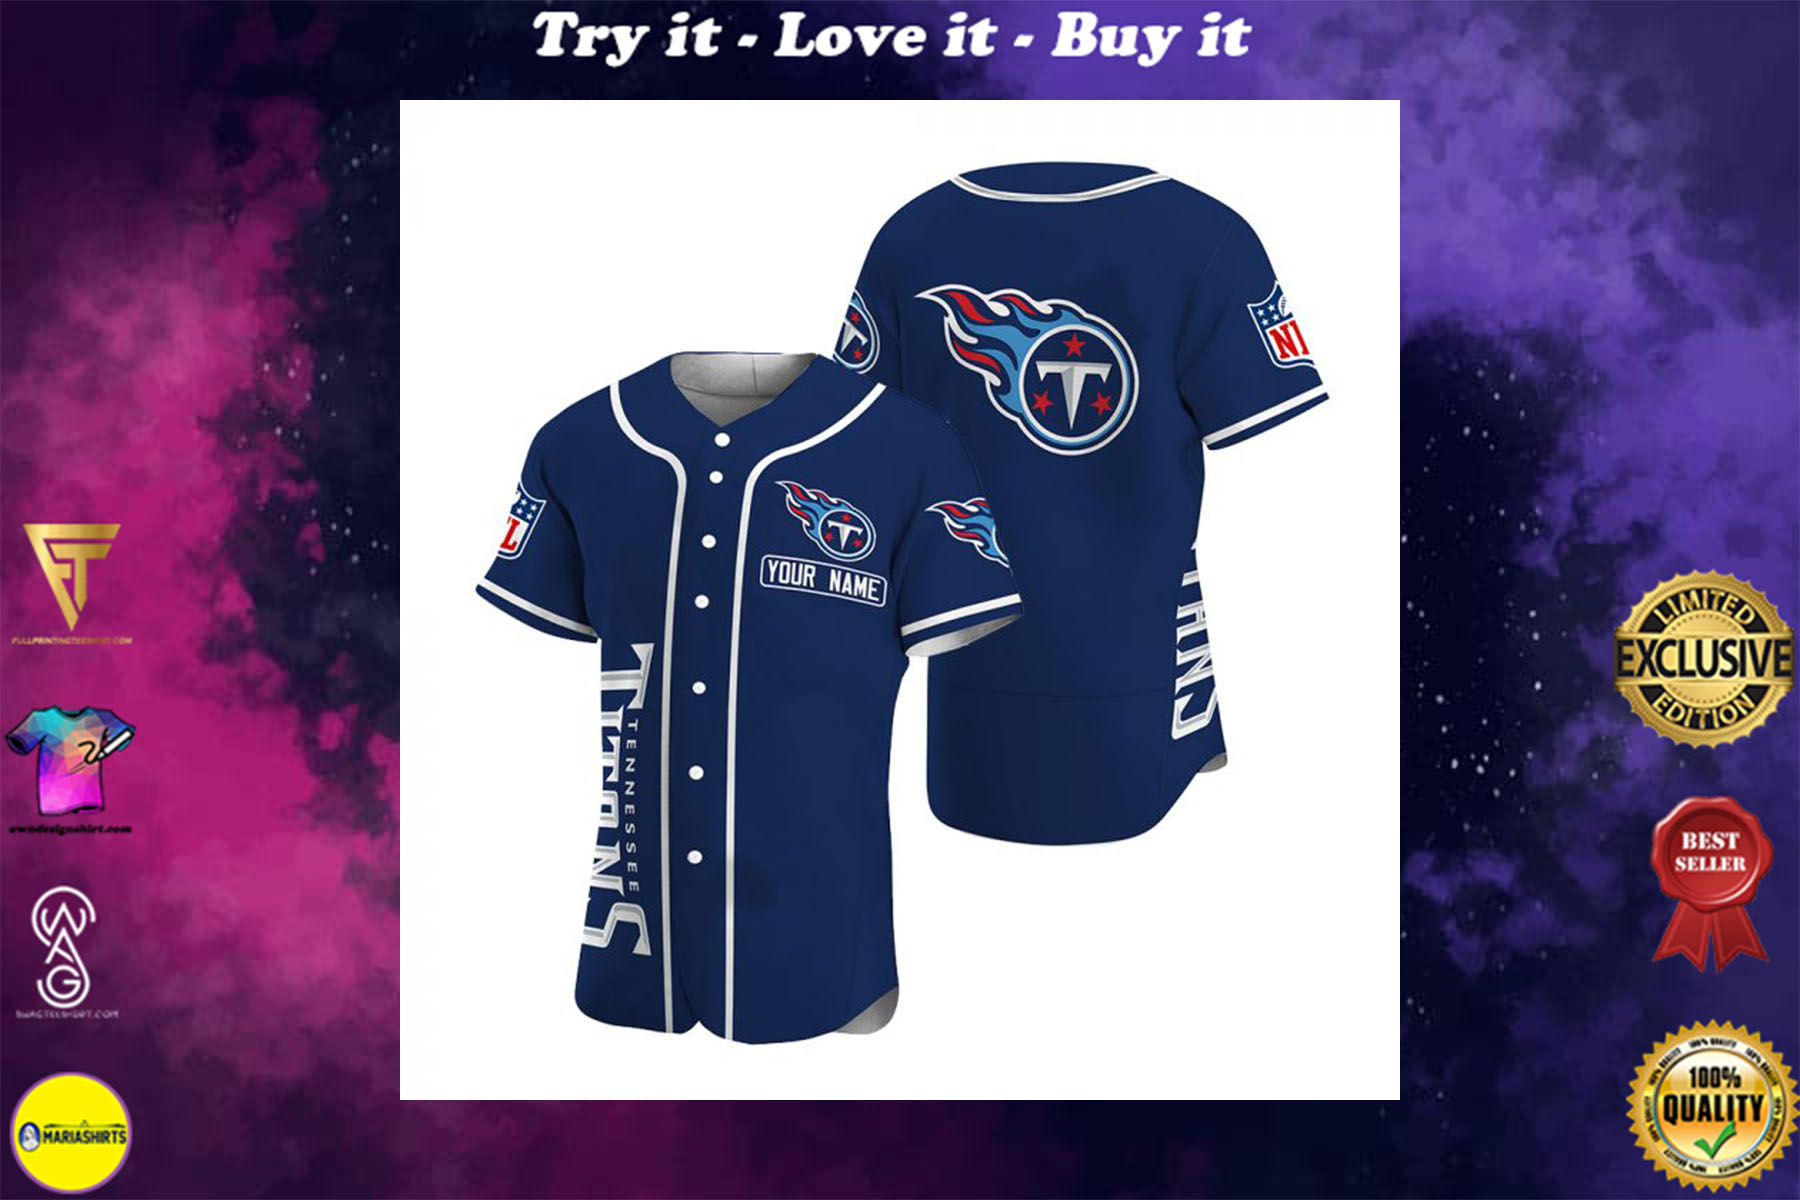 [special edition] customize name jersey tennessee titans shirt - maria